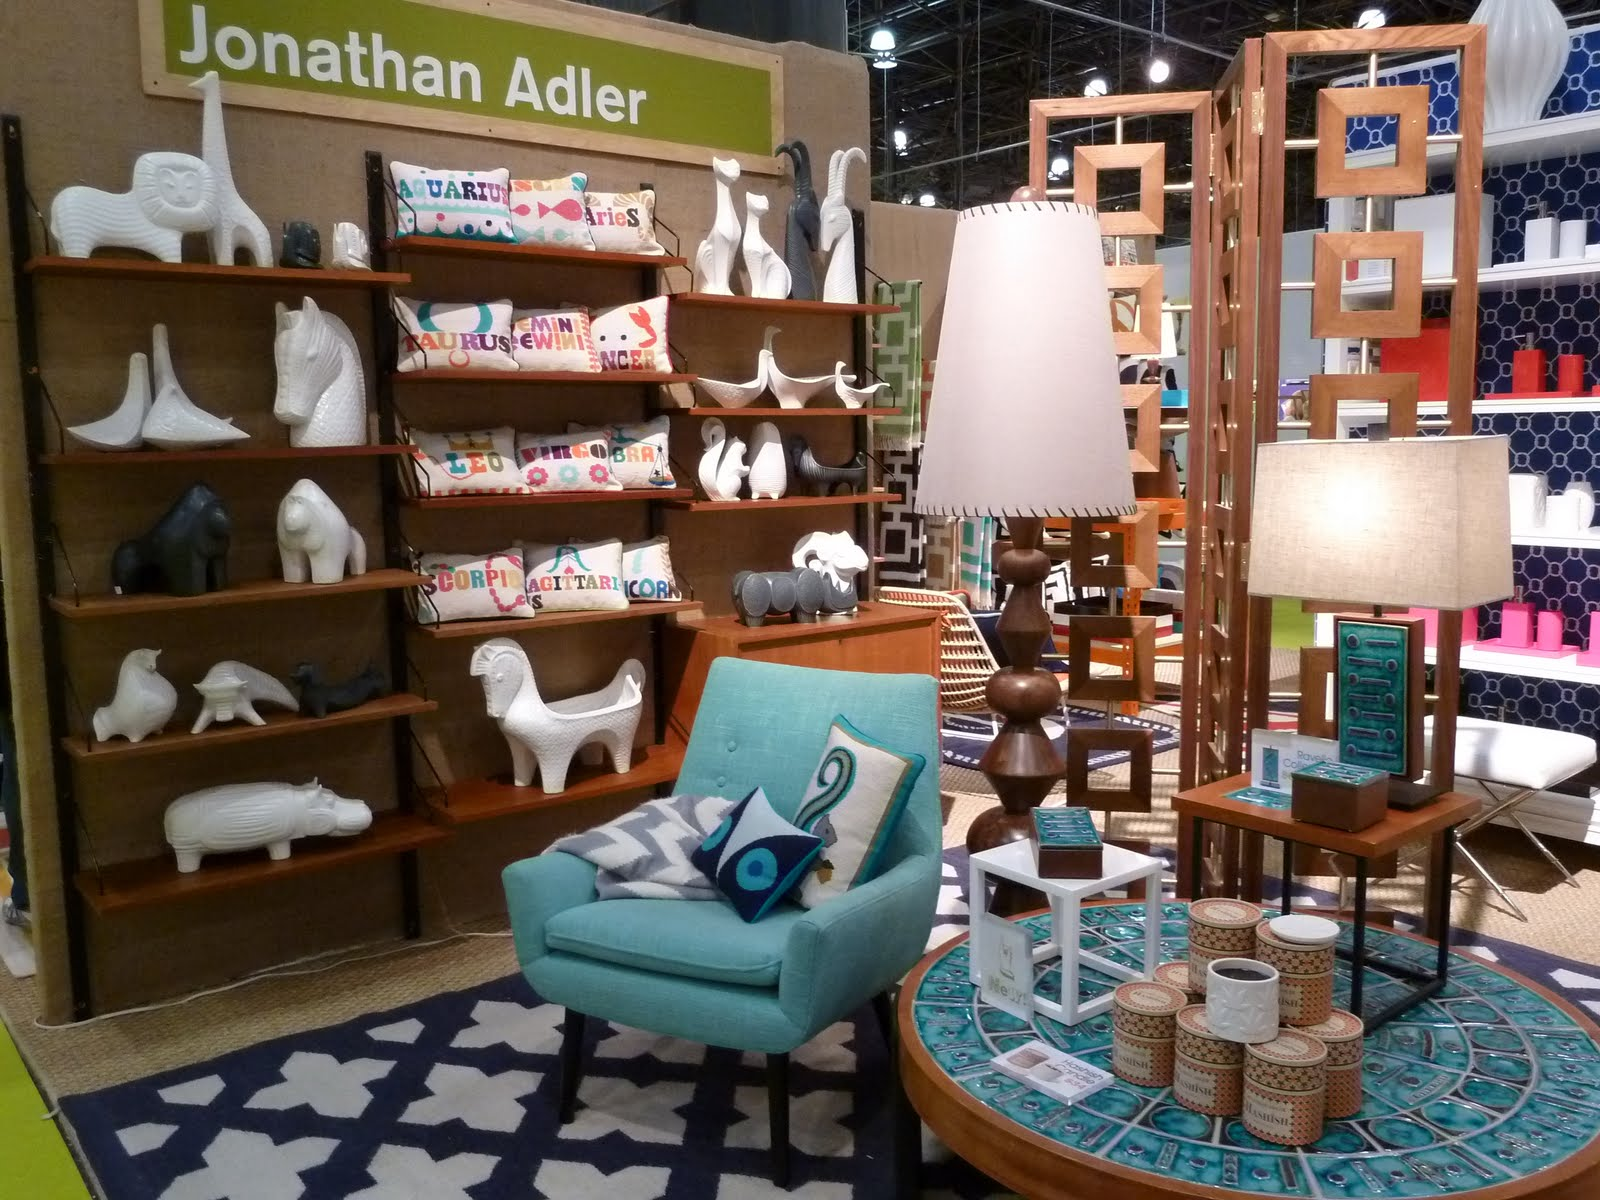 Since The Jonathan Adler Booth Is First One That Greets Me As I Tour Accent On Design Section Of New York International Gift Fair